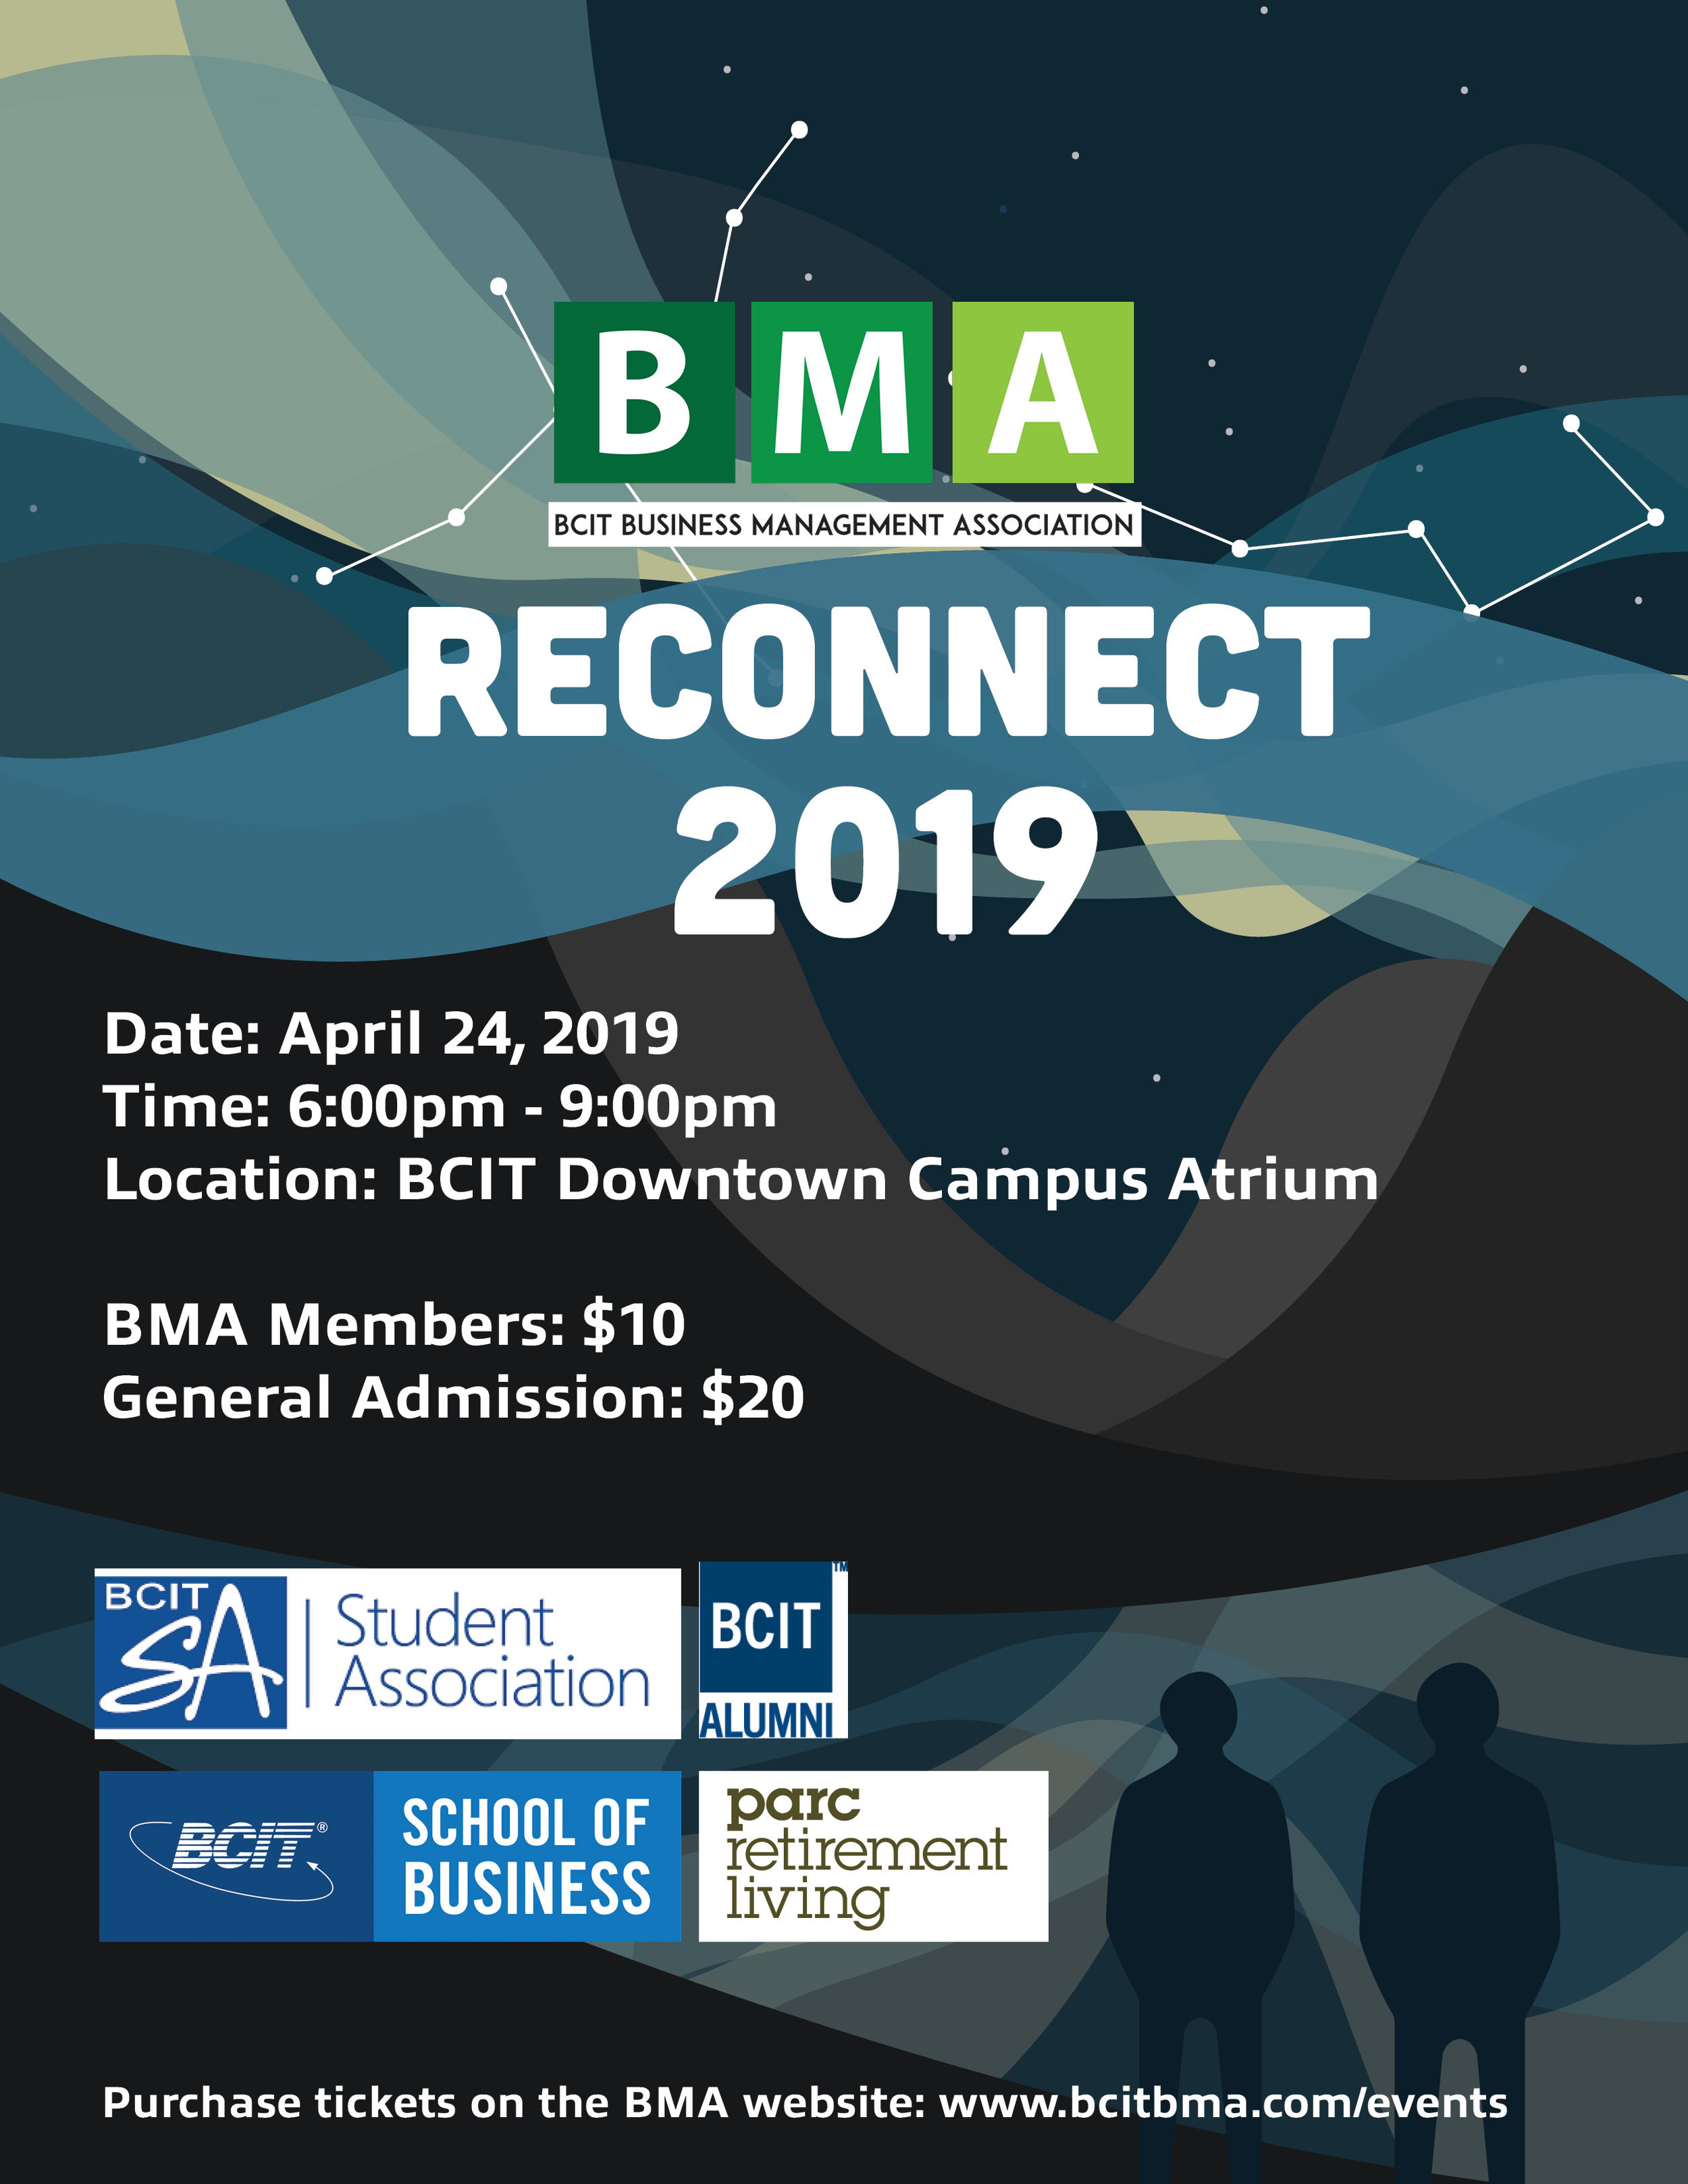 ReConnect 2019 - Reconnect is an amazing opportunity to bring together alumni, students of BCIT's School of Business, and industry professionals. The night is a networking event for participants to make connections, talk about business, the current job market and career transitions.